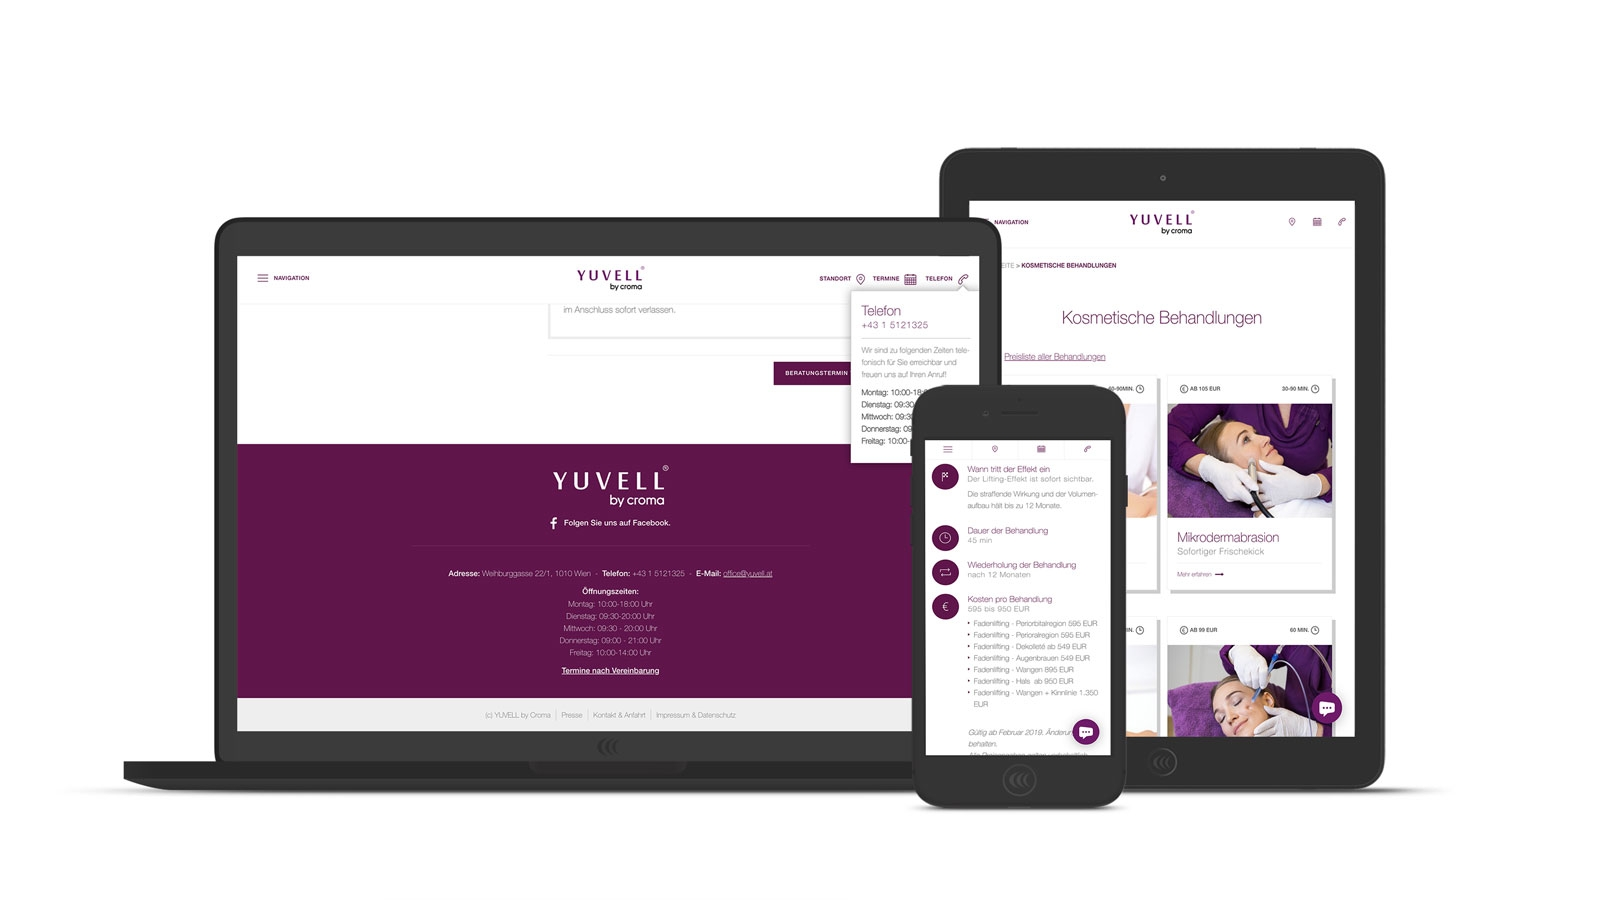 Yuvell Fine Aesthetics | yuvell.at | 2016 (Responsive) © echonet communication